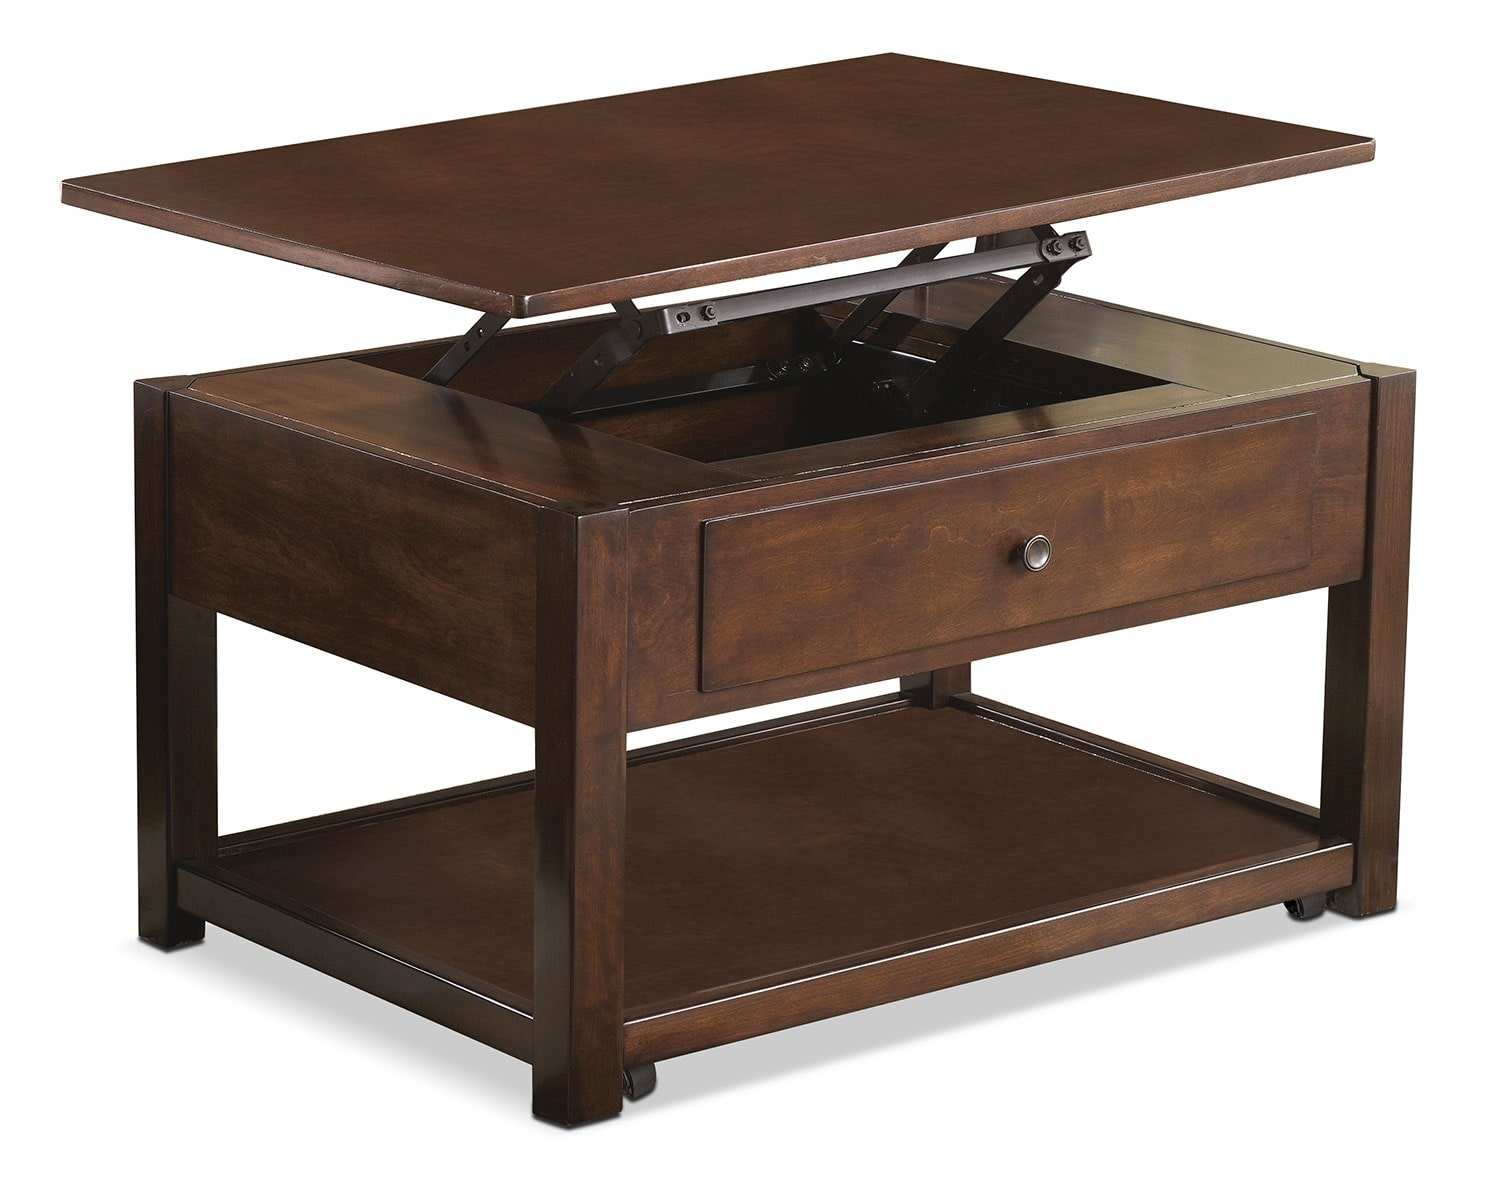 marion coffee table with lift top and casters the brick. Black Bedroom Furniture Sets. Home Design Ideas